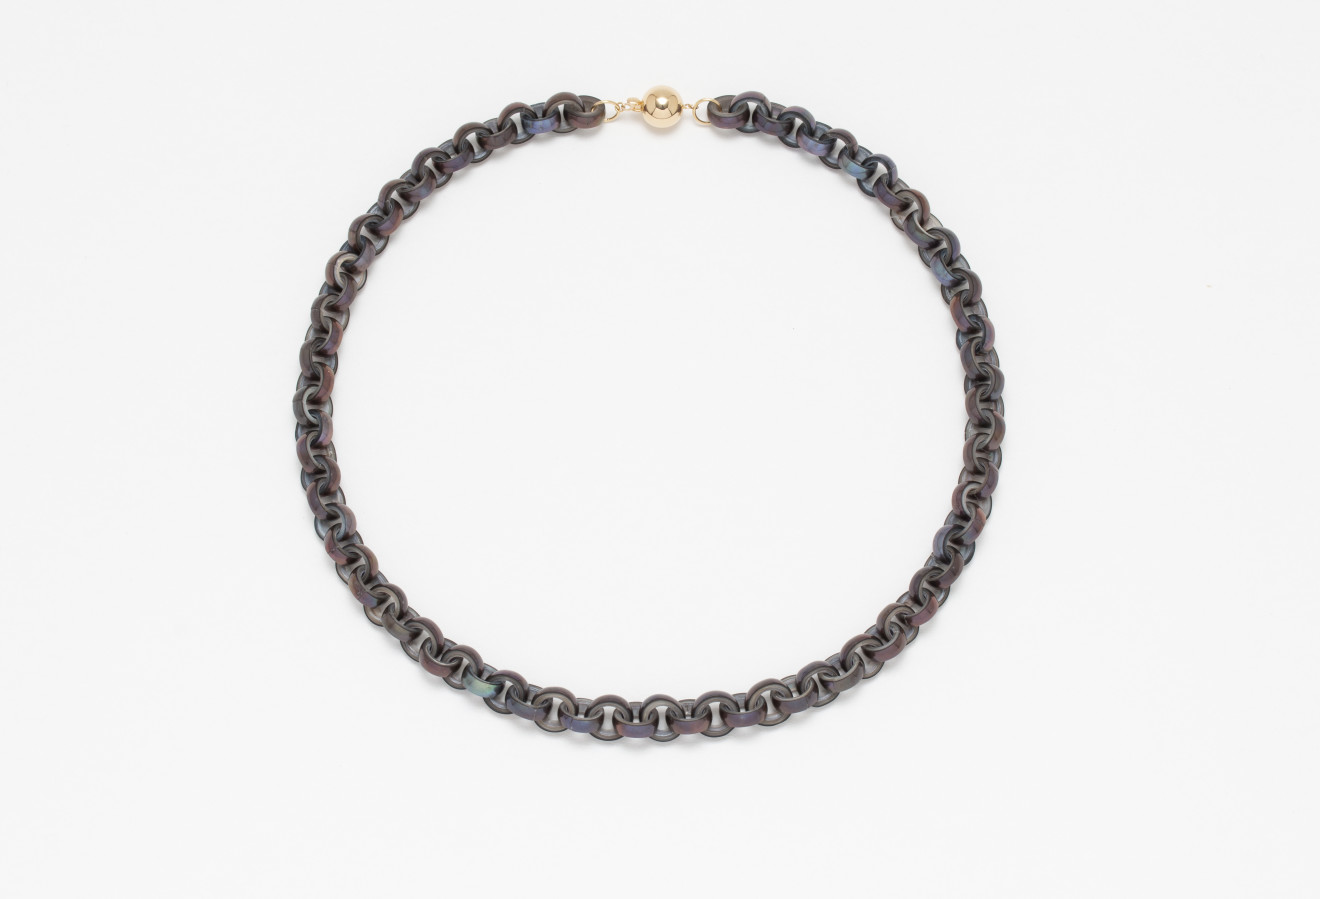 Lin Cheung, Peacock Pearl Chain Necklace, 2019